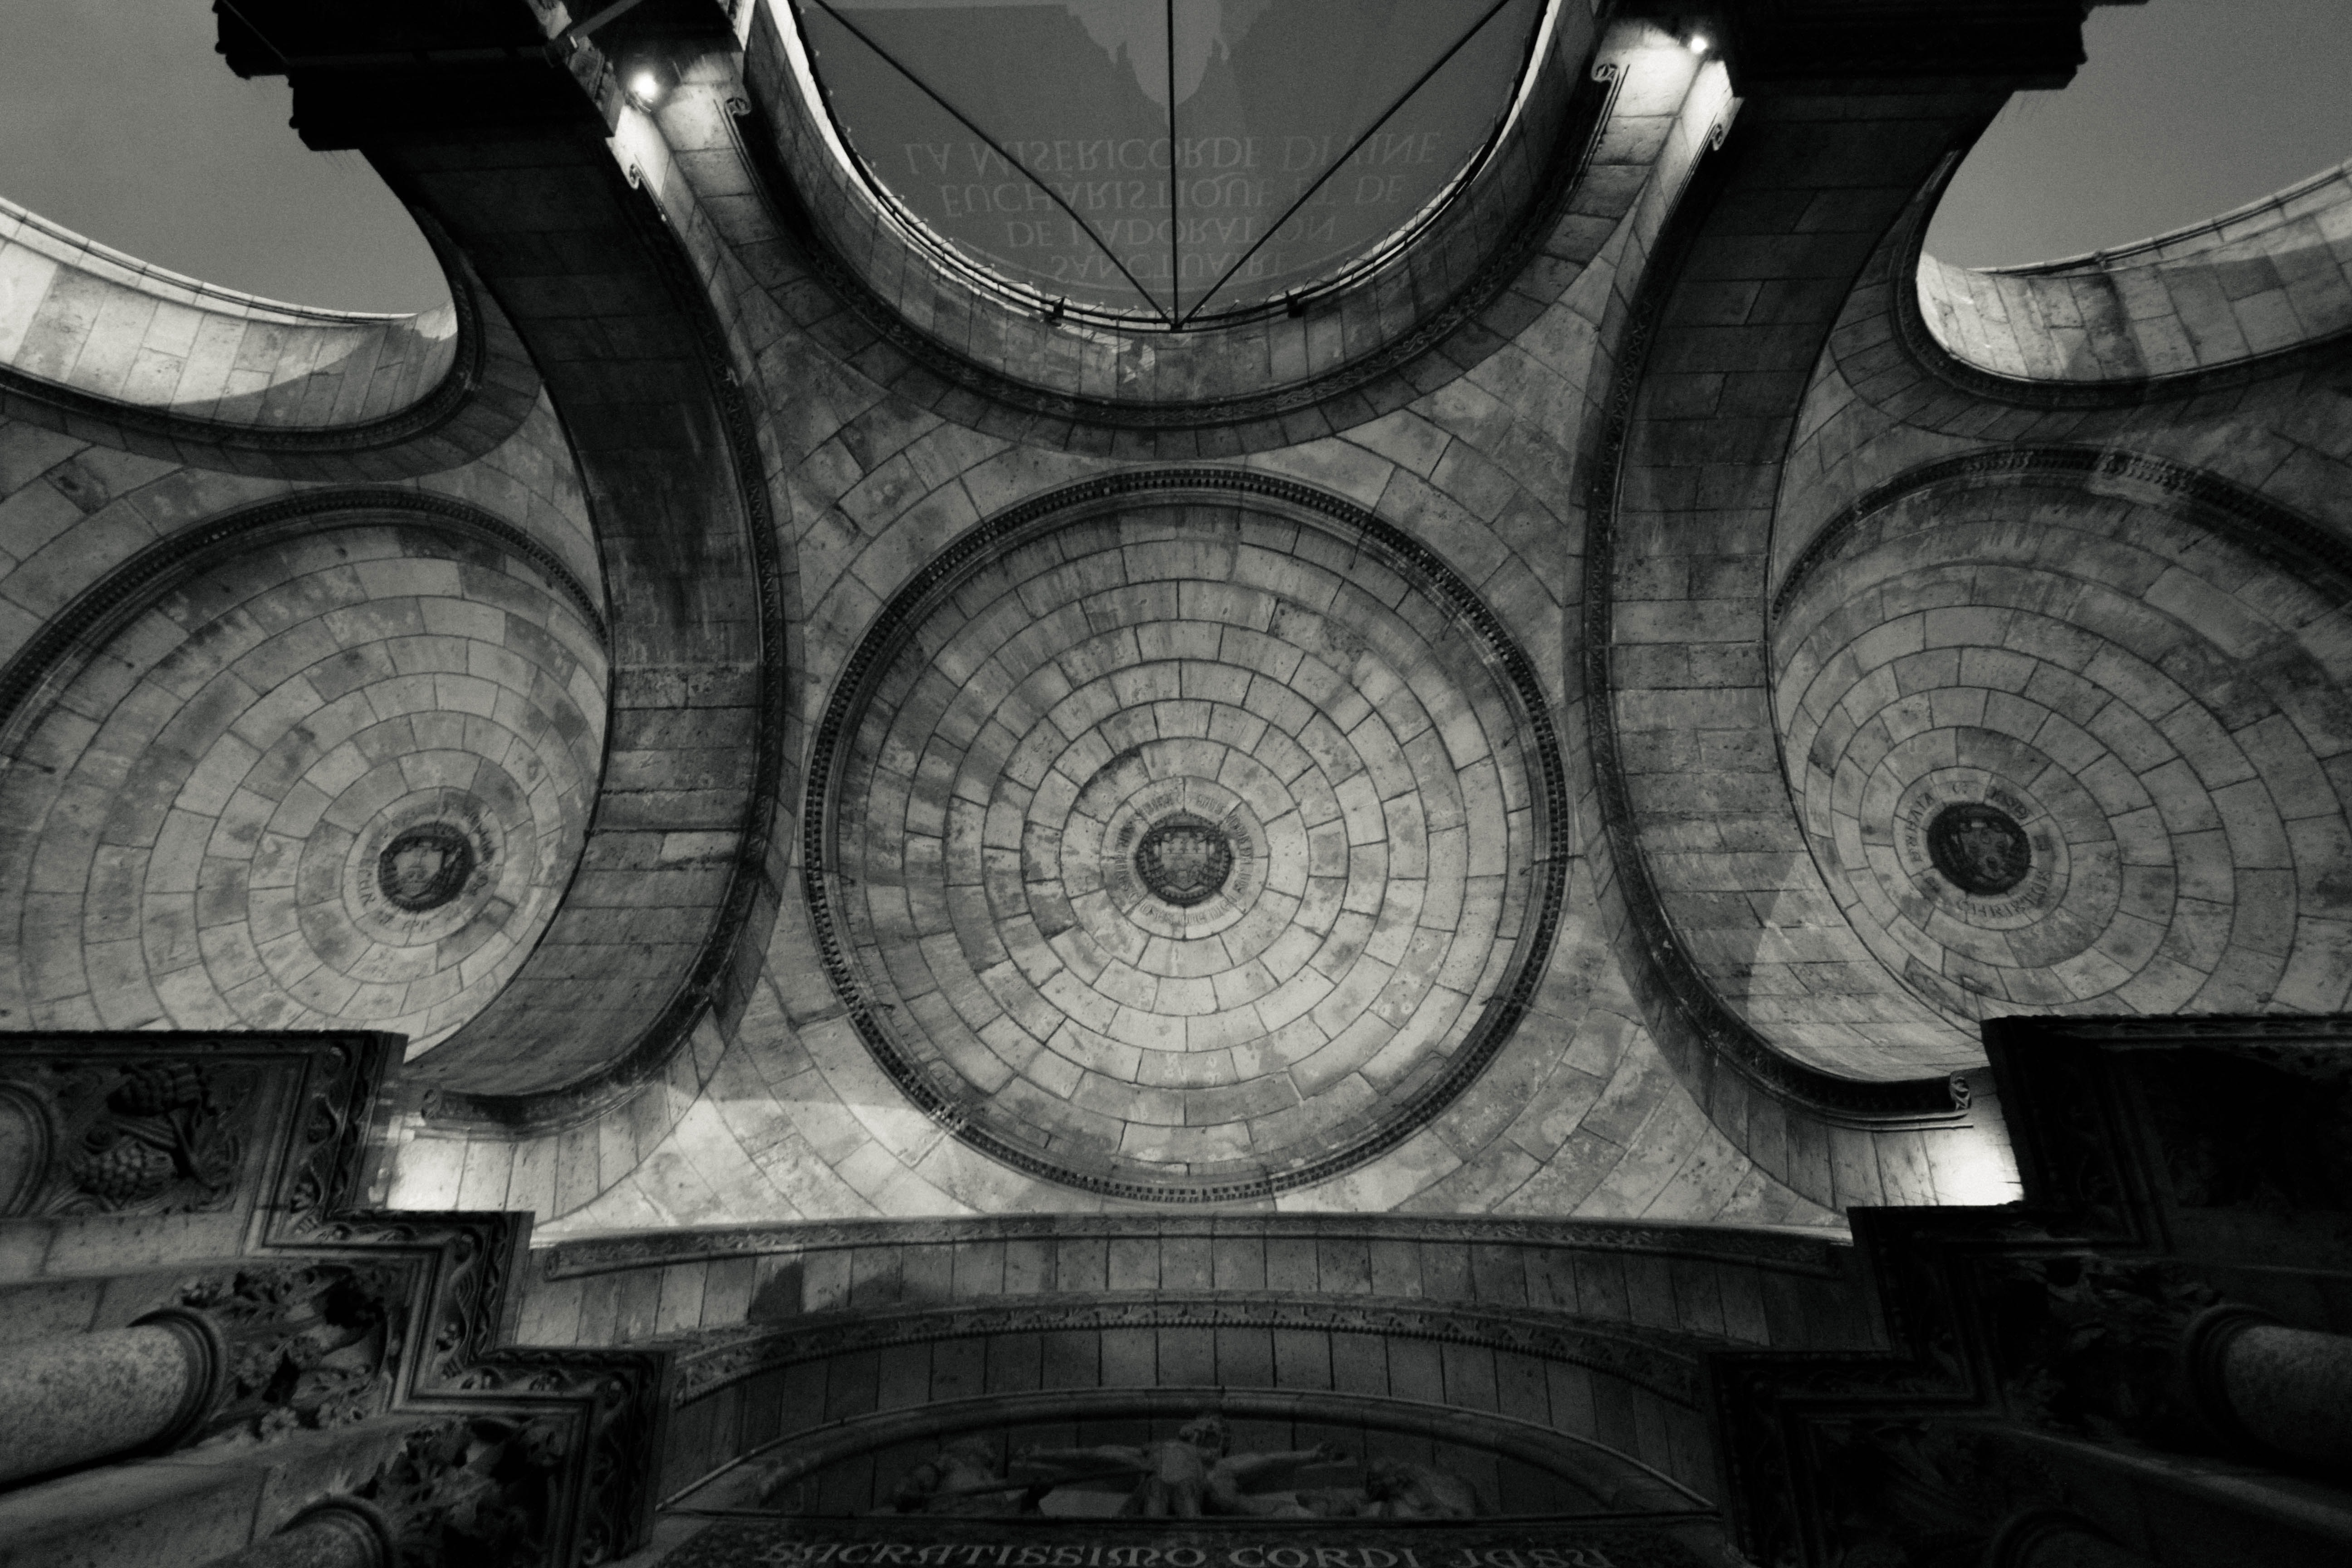 Circular architecture in a building in France.